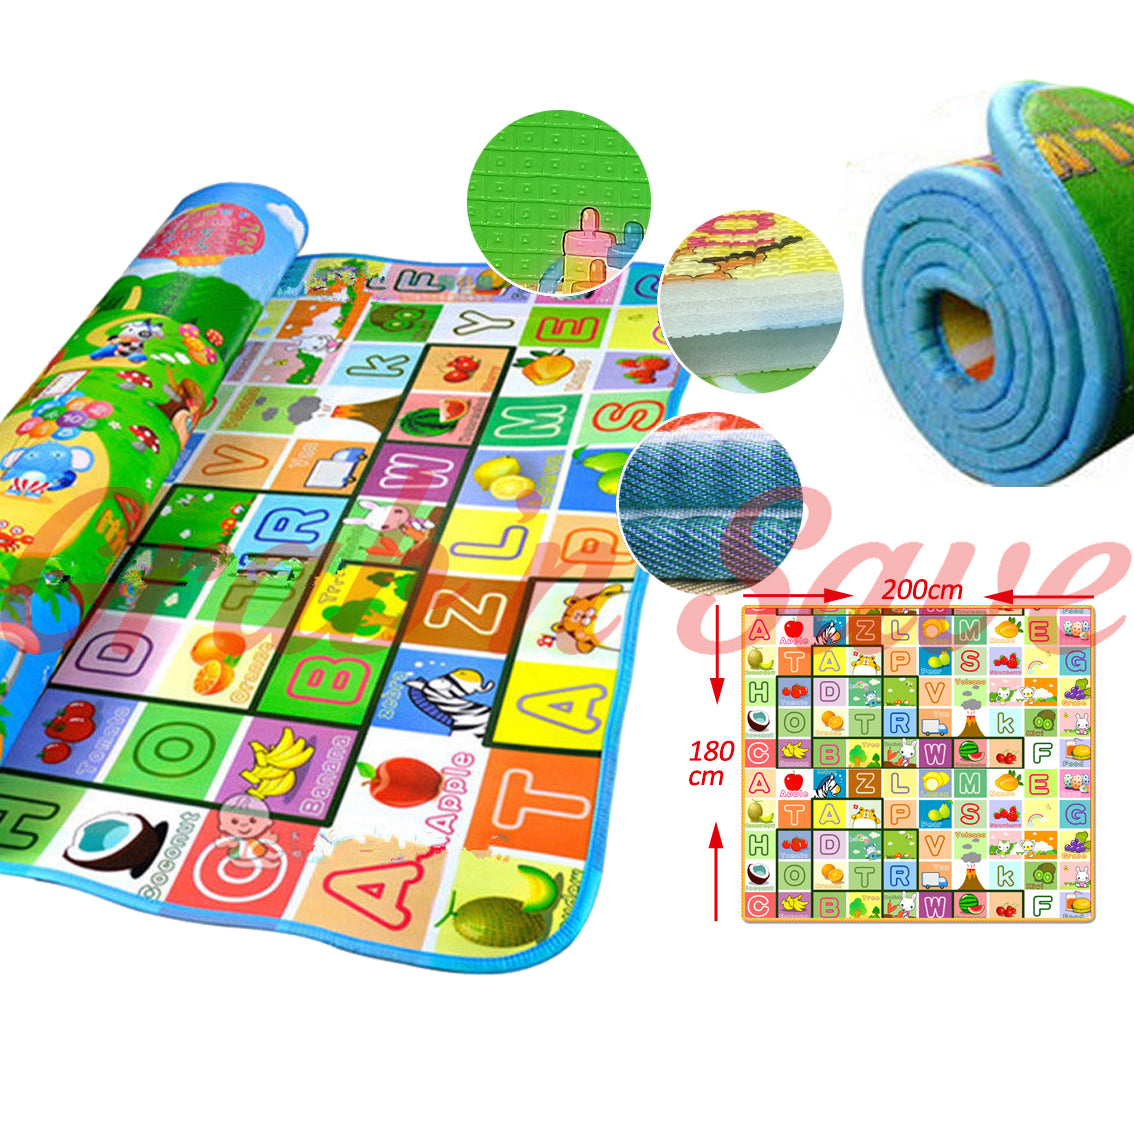 Baby Play Mat, Baby Play Gym, Play Mat